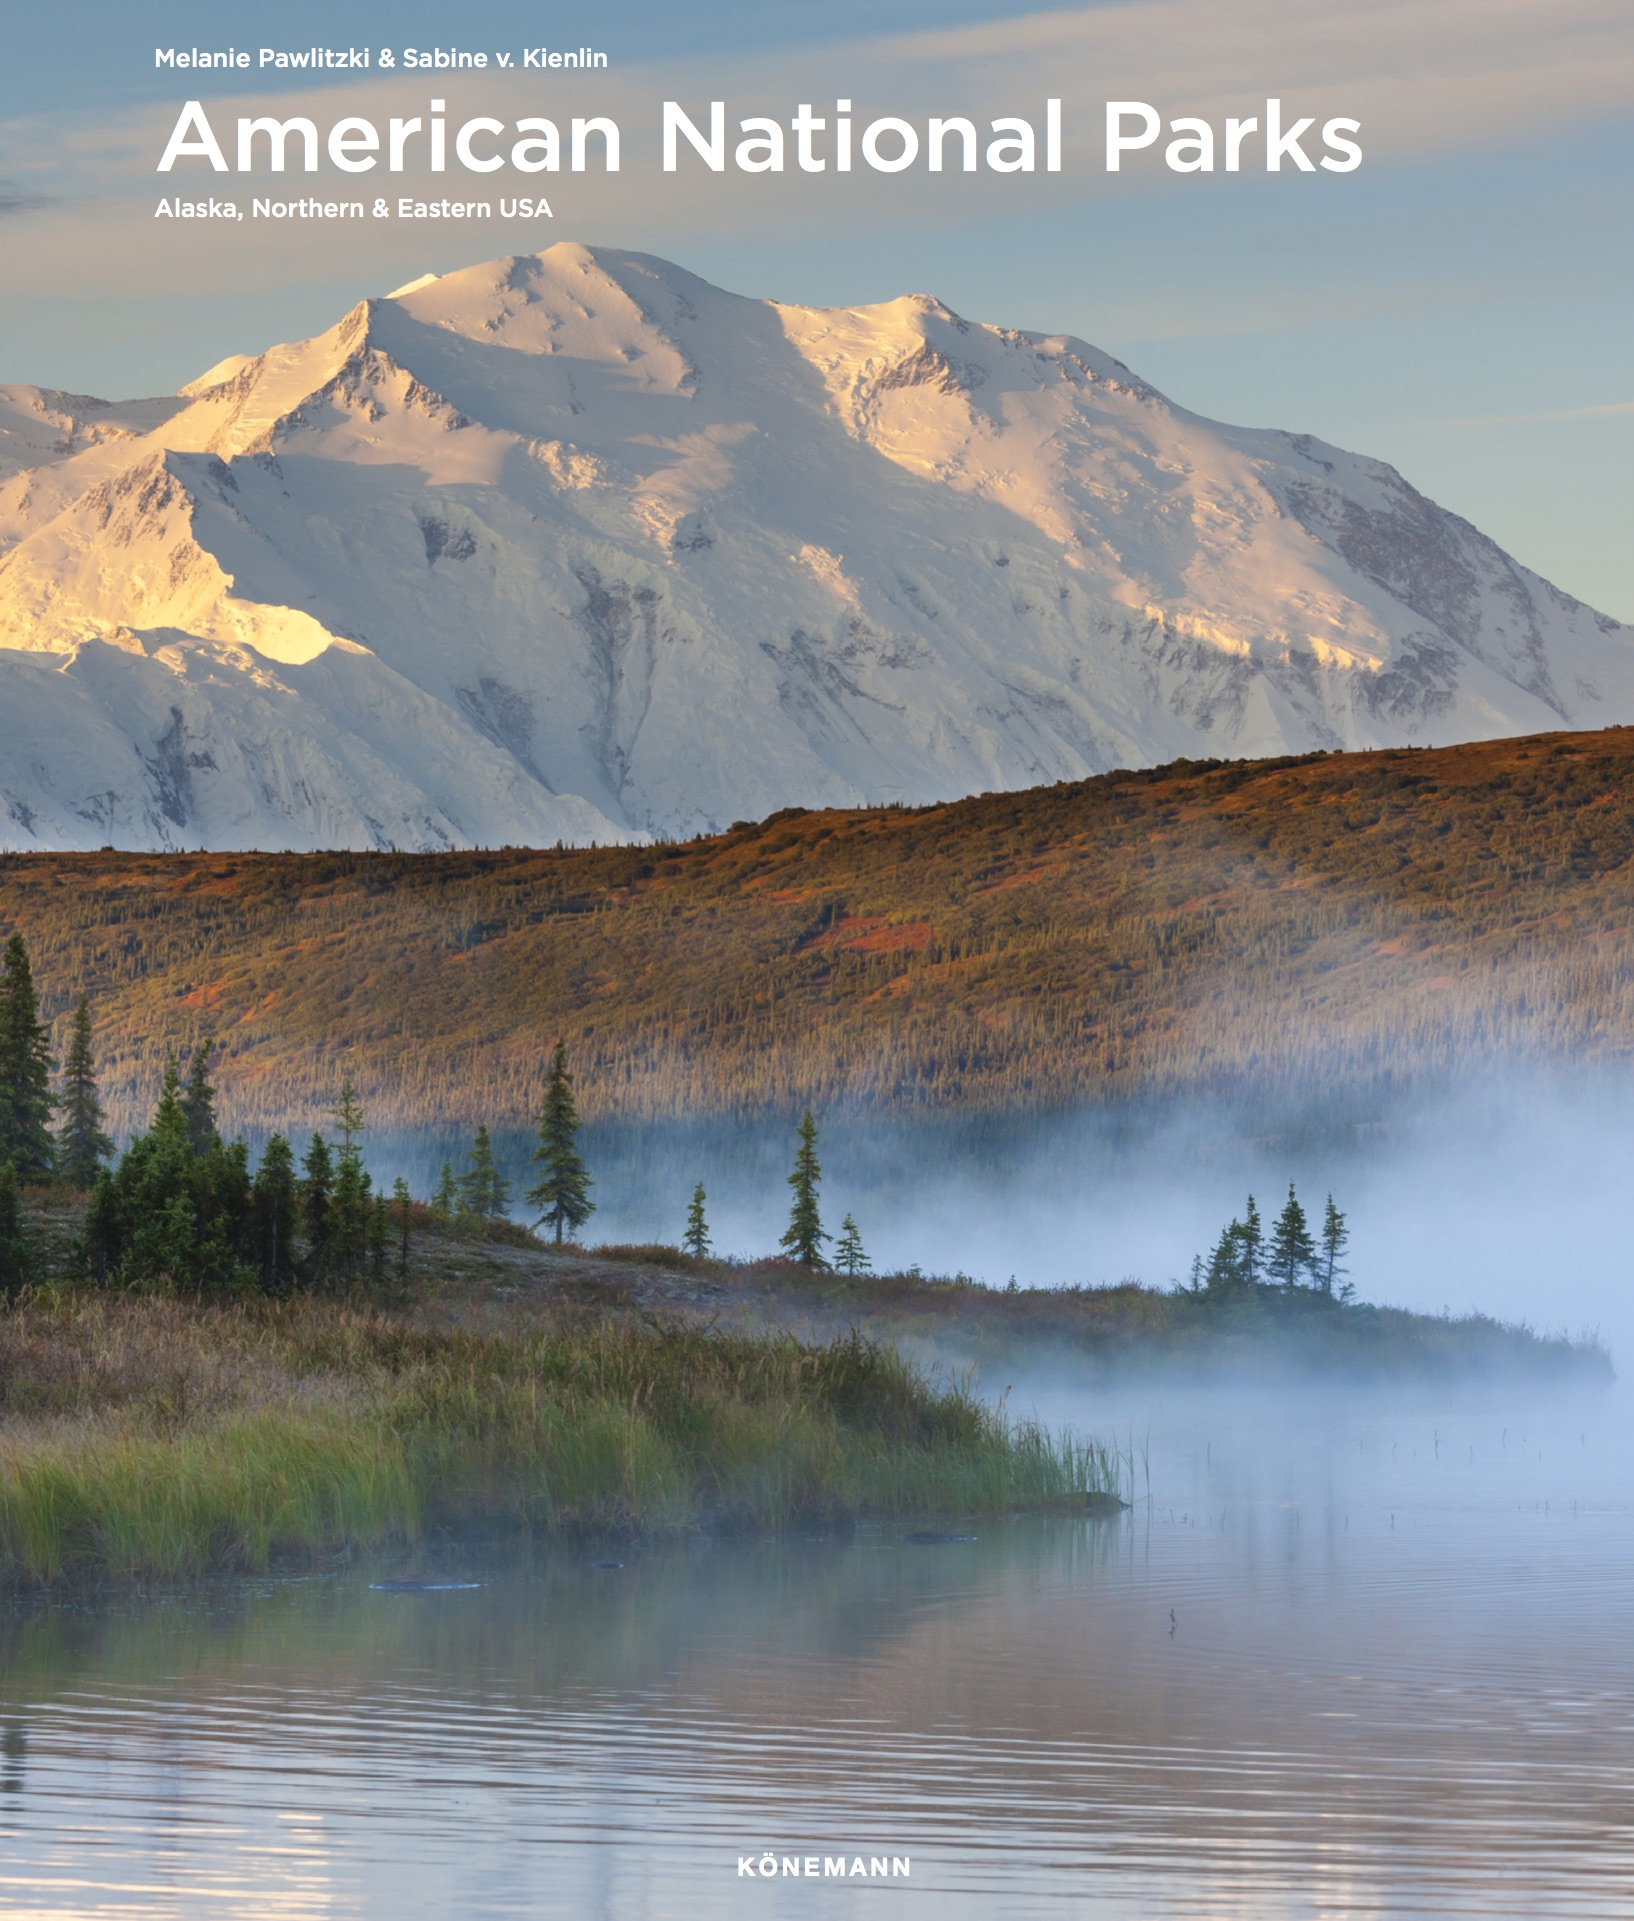 American National Parks - Alaska, Northern & Eastern USA